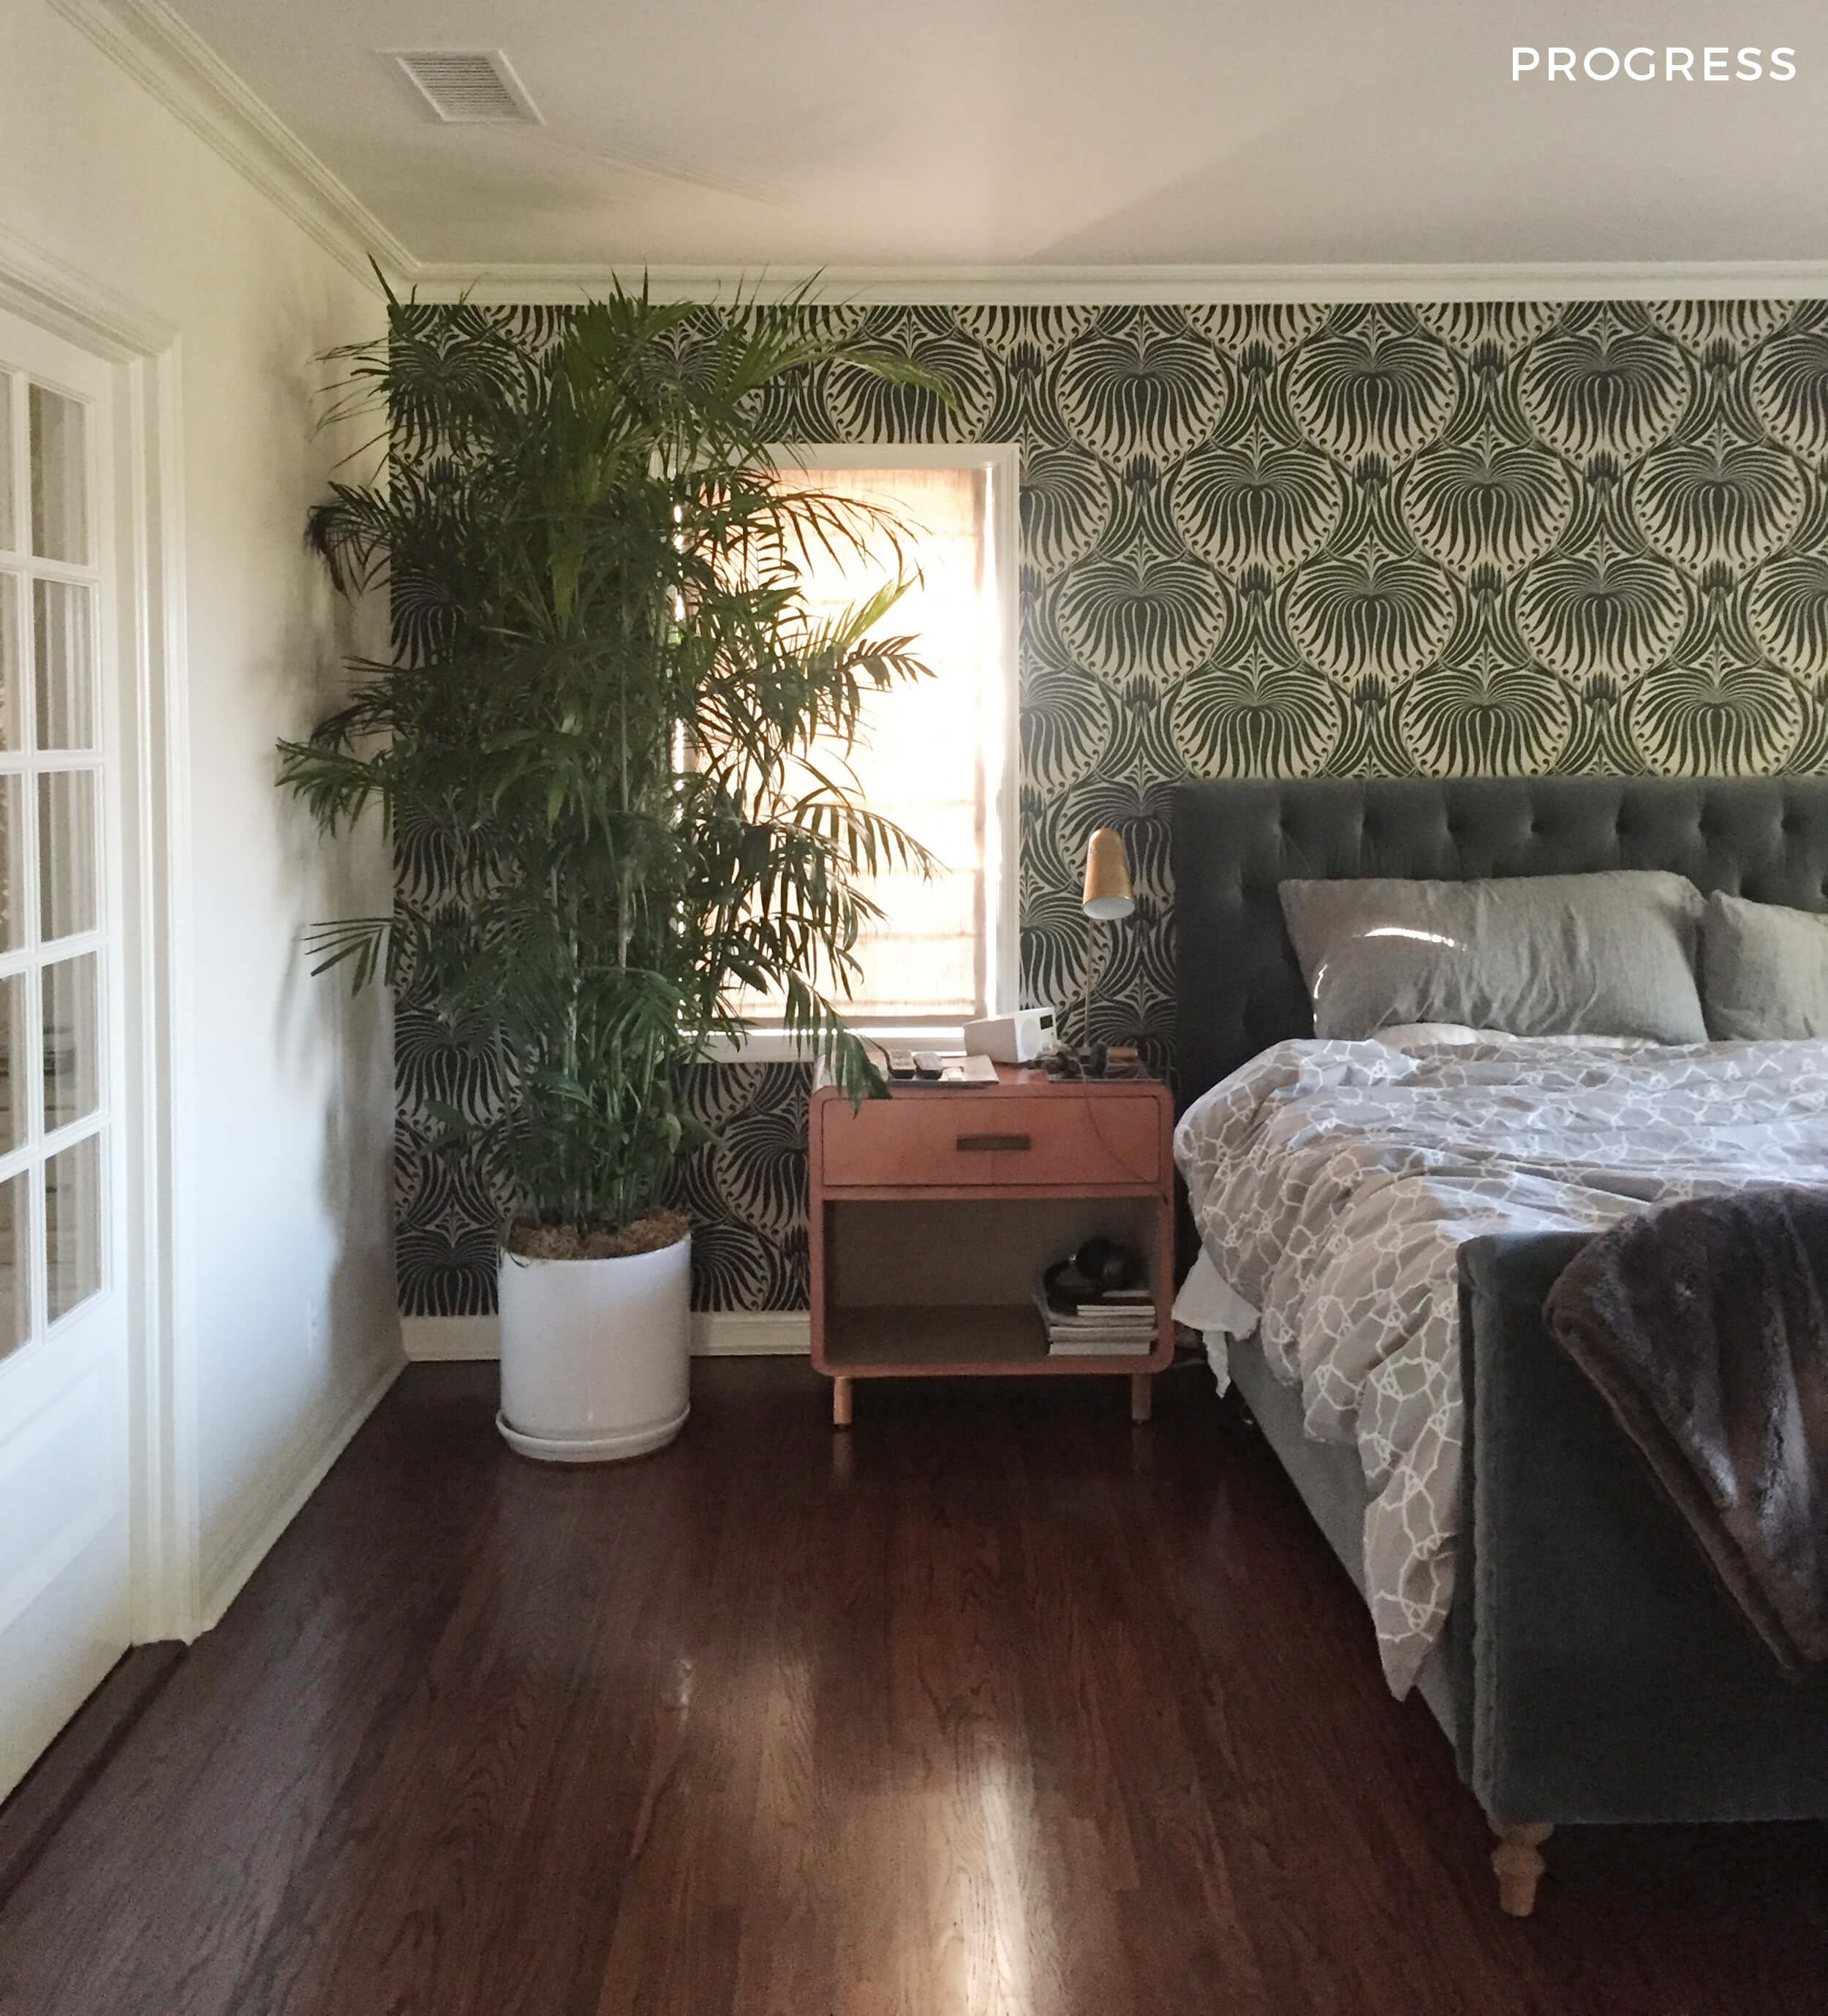 16_GINNY_MACDONALD_TRADITIONAL_BEDROOM_PALM_TREE